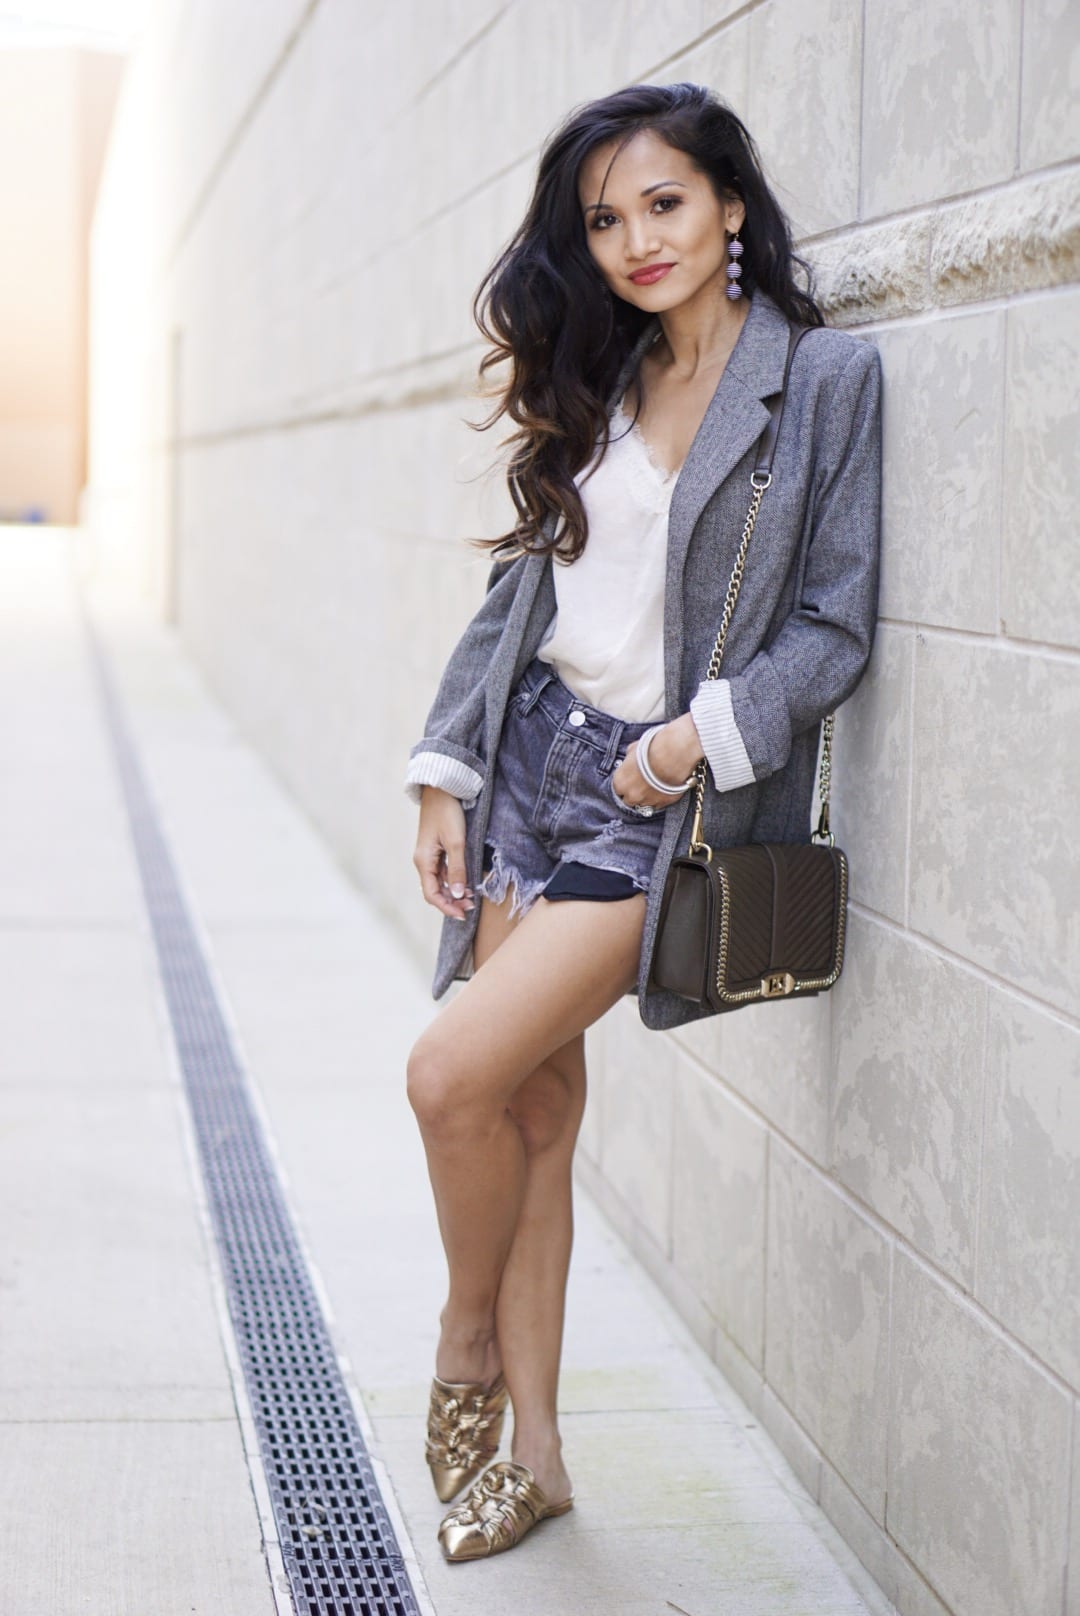 tweed blazer, spring style. Rebecca Minkoff mules, gold mules, spring shoe, Rebecca Minkoff love crossbody bag, Free People Good Vibration shorts, business casual outfit, spring style, spring sale, shopbop spring sale, black denim shorts